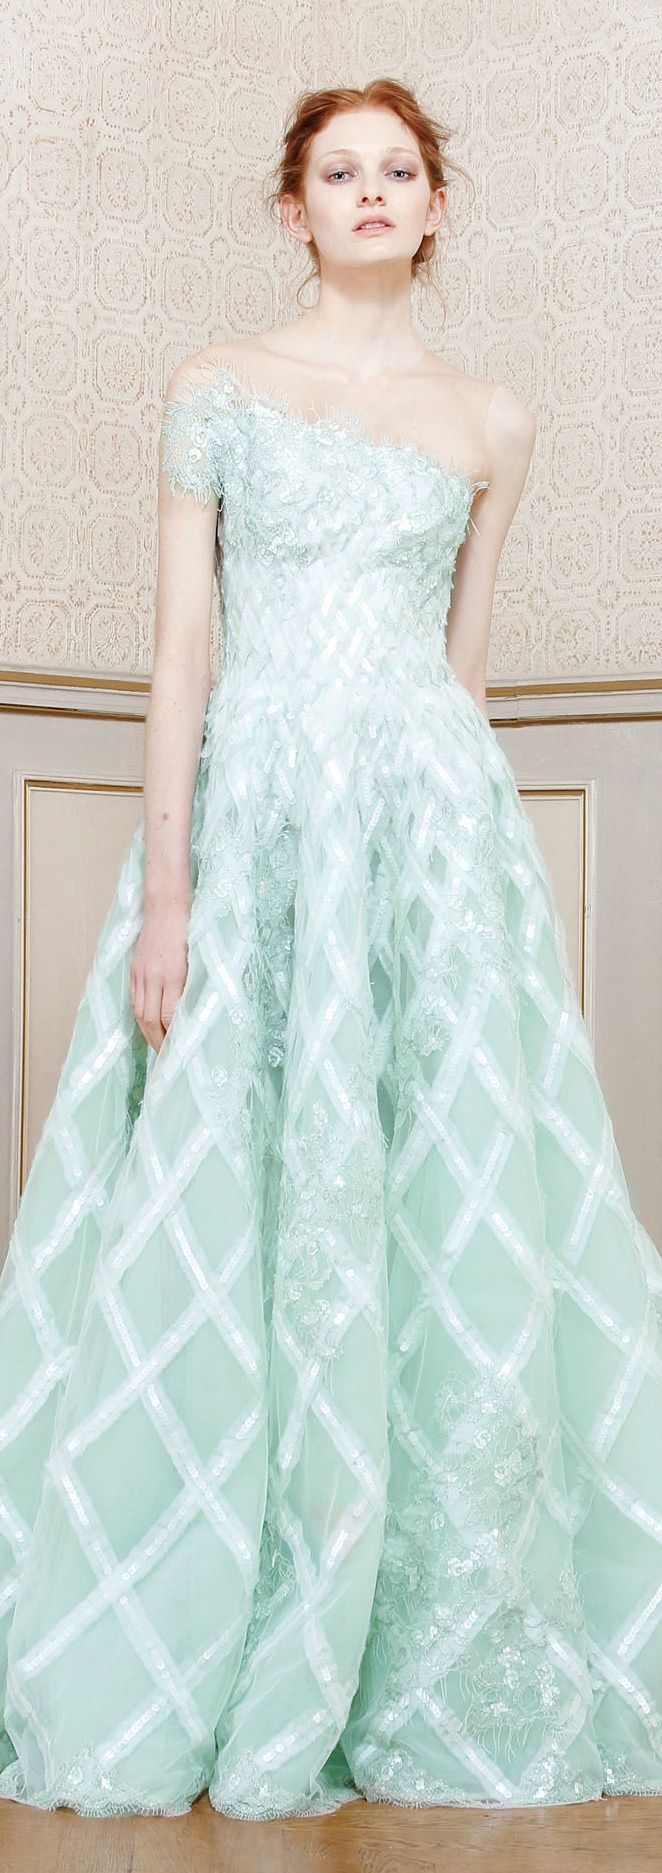 The 148 best Color: Tiffany Blue images on Pinterest | Turquoise ...